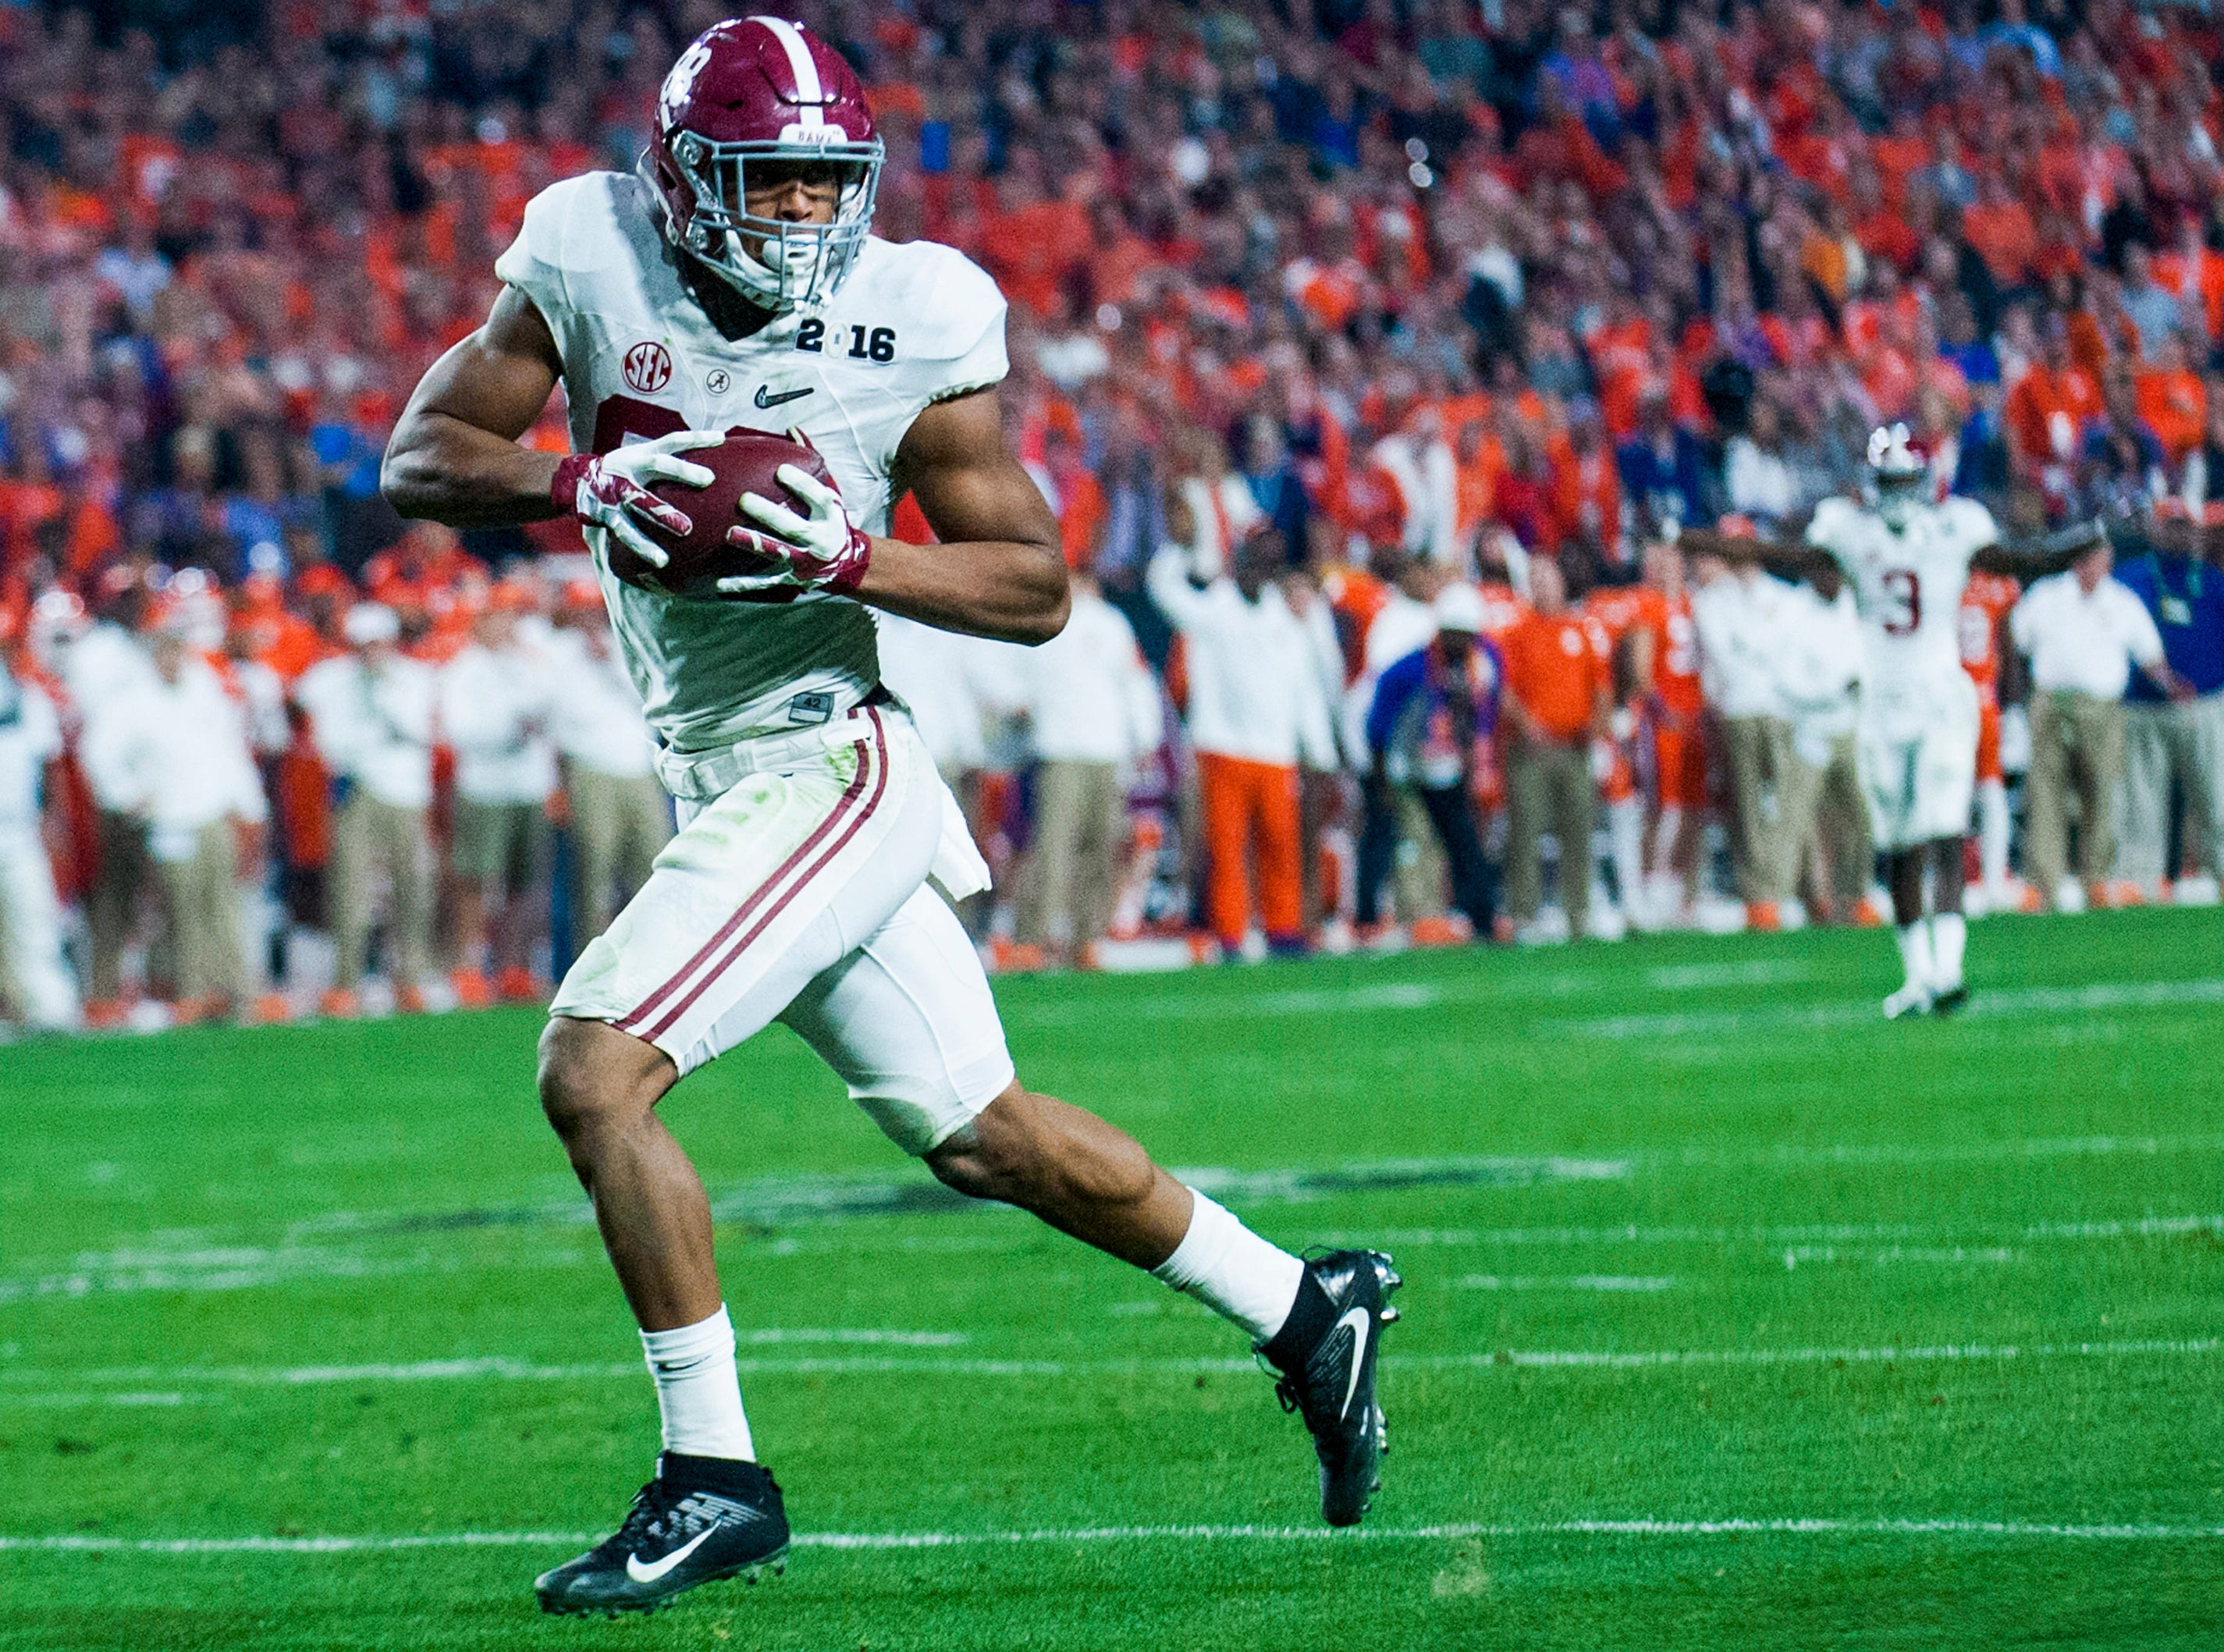 Alabama tight end O.J. Howard (88) scores his second touchdown against Clemson in the College Football Playoff Championship Game on Monday January 11, 2016 at University of Phoenix Stadium in Glendale, Az.